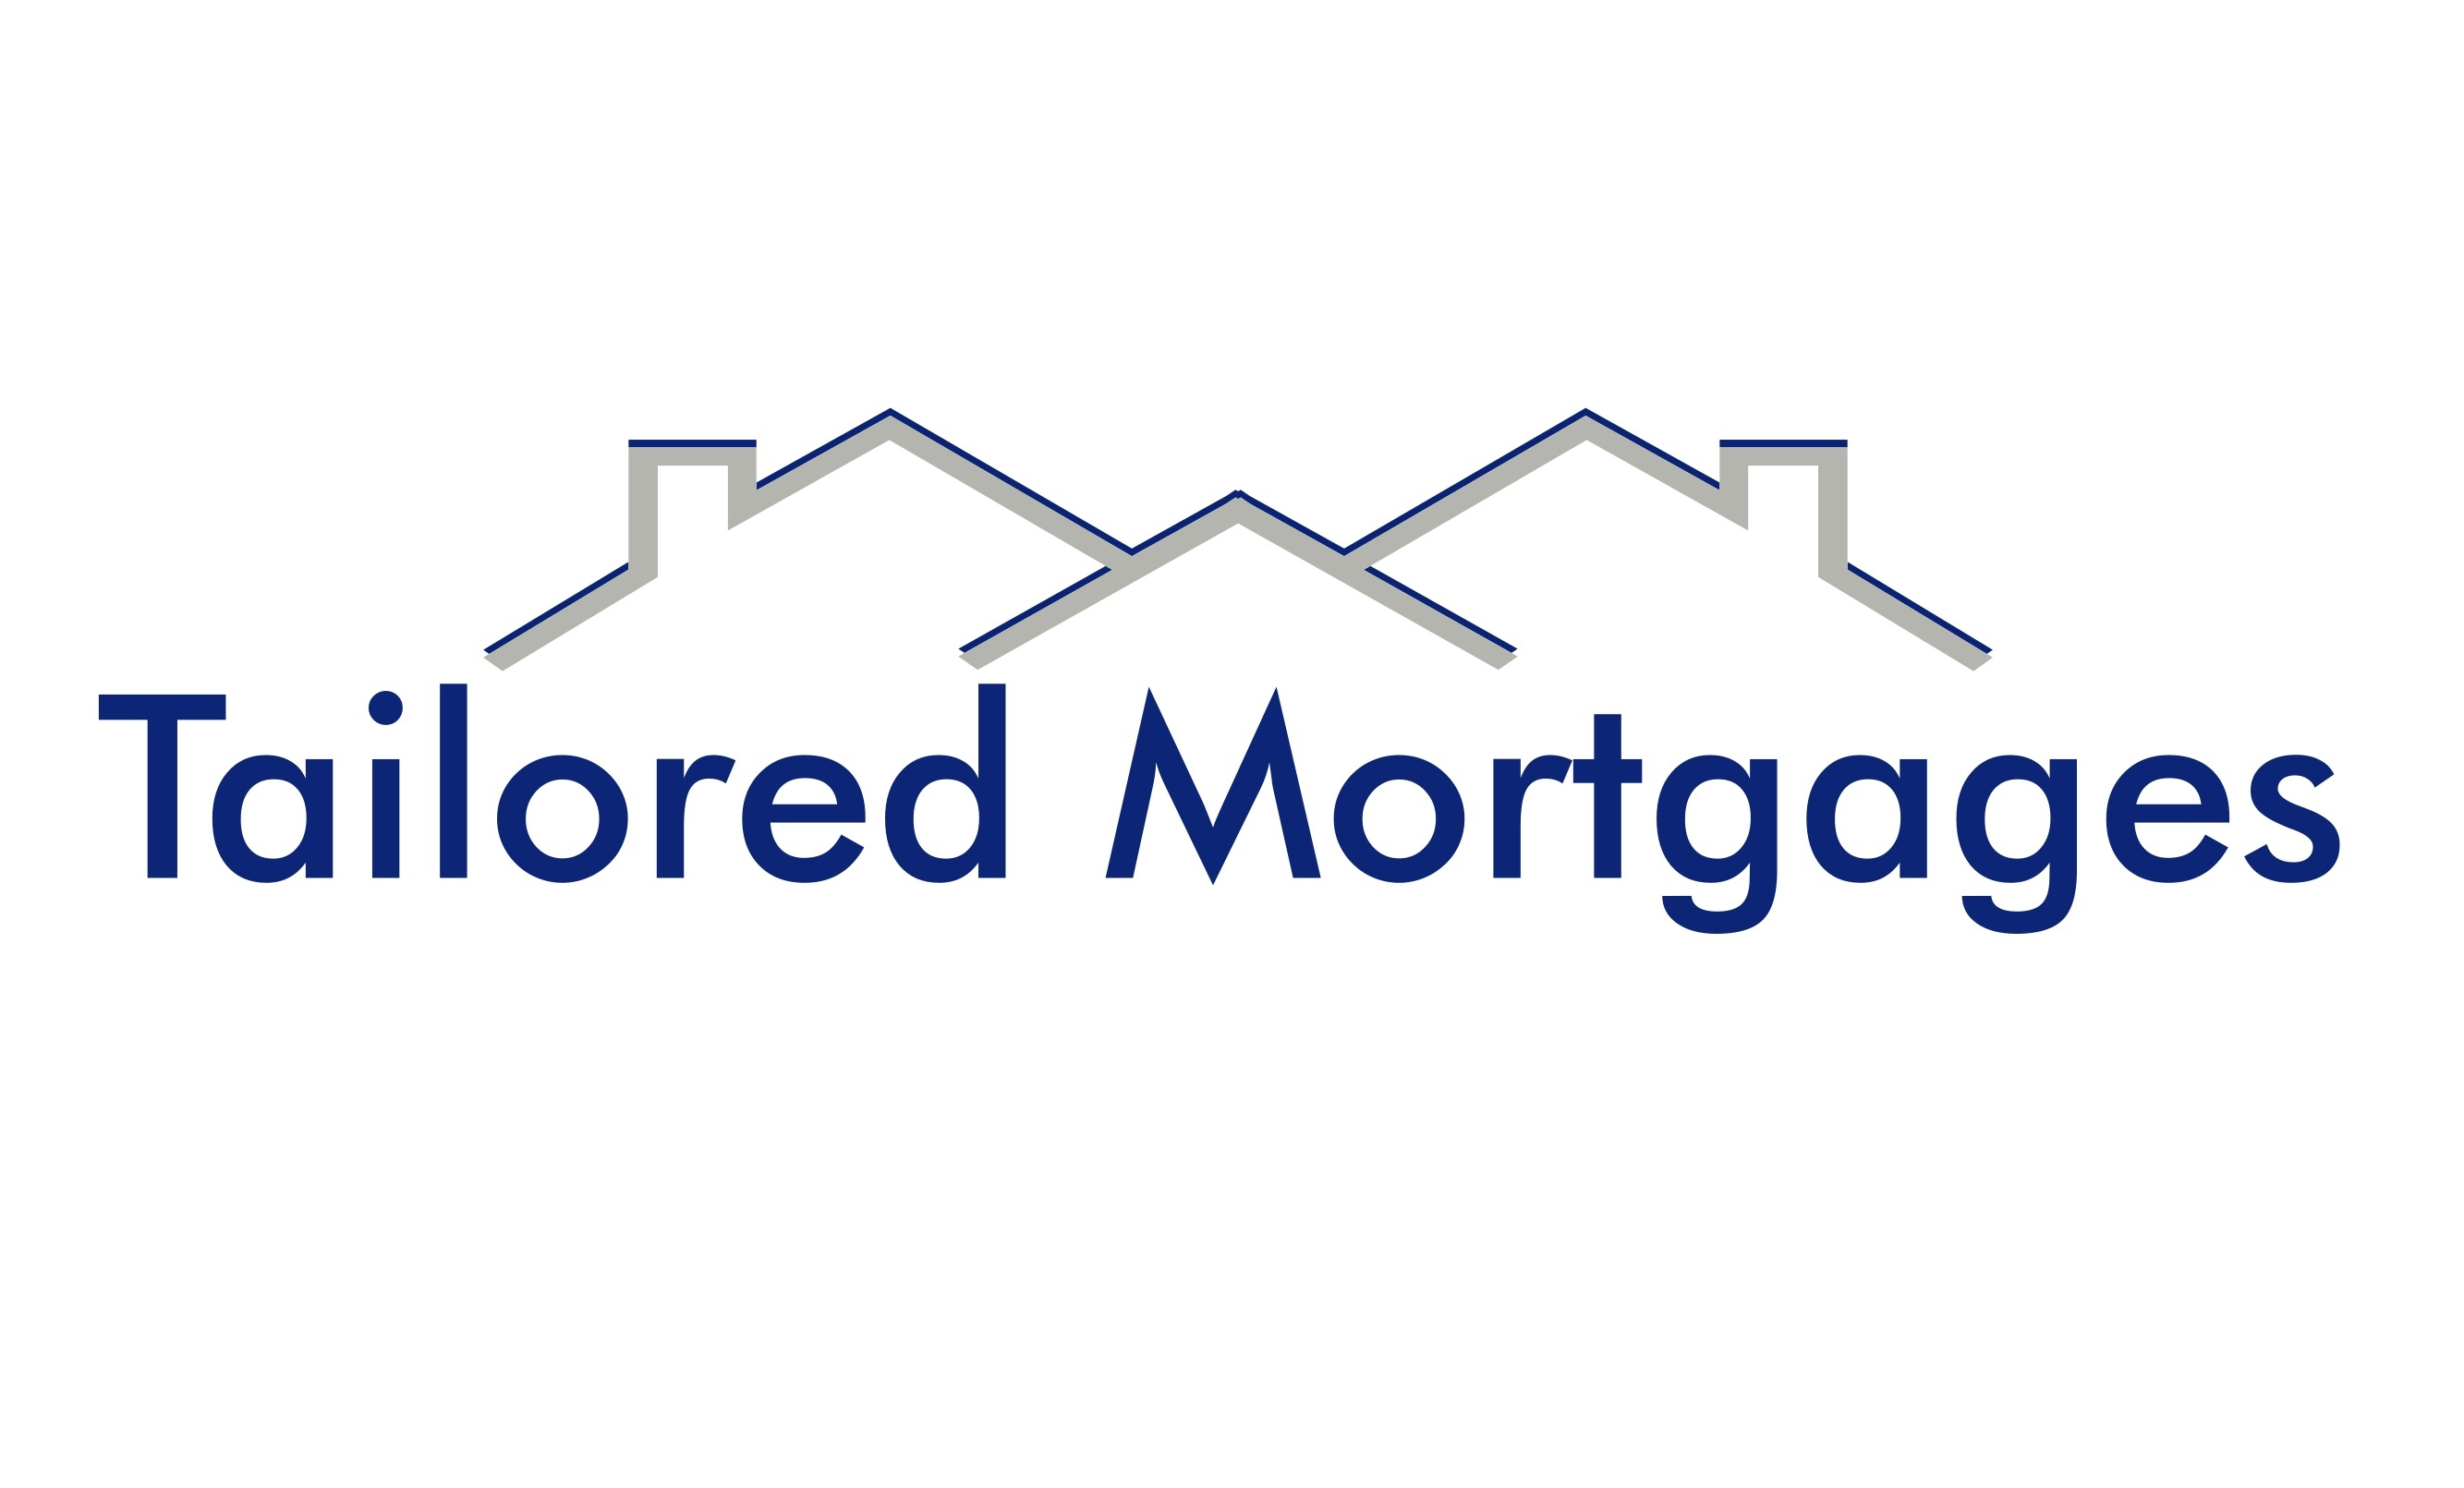 Tailored Mortgages